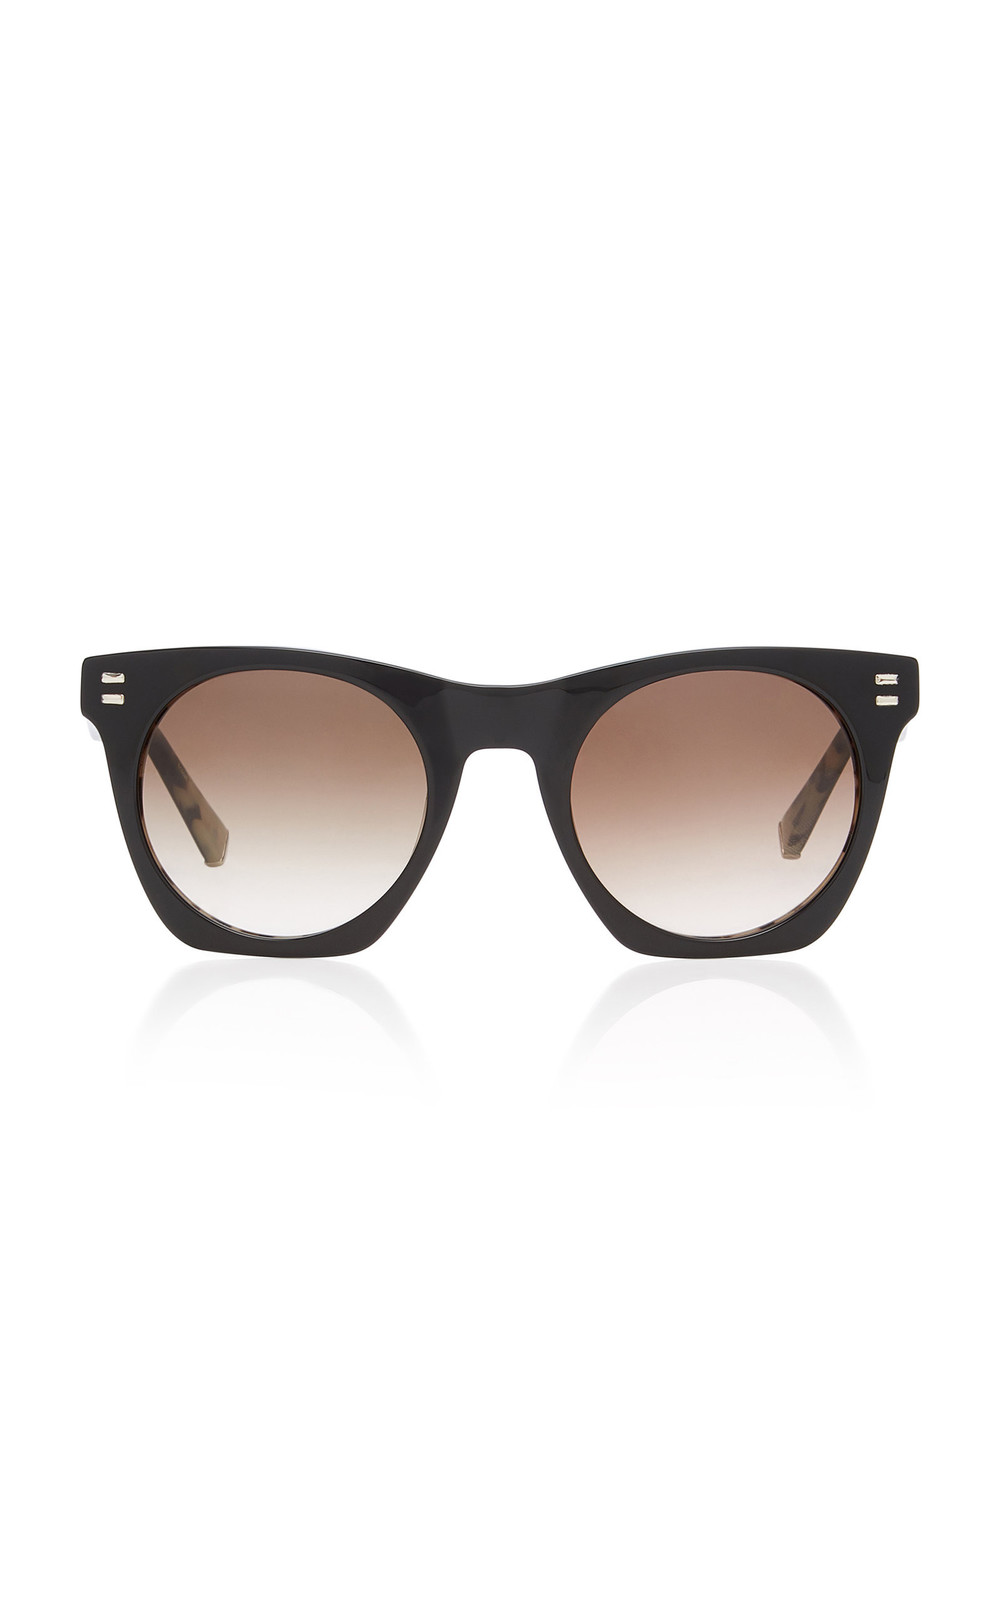 Kate Young Aylin Square-Frame Acetate Sunglasses in black